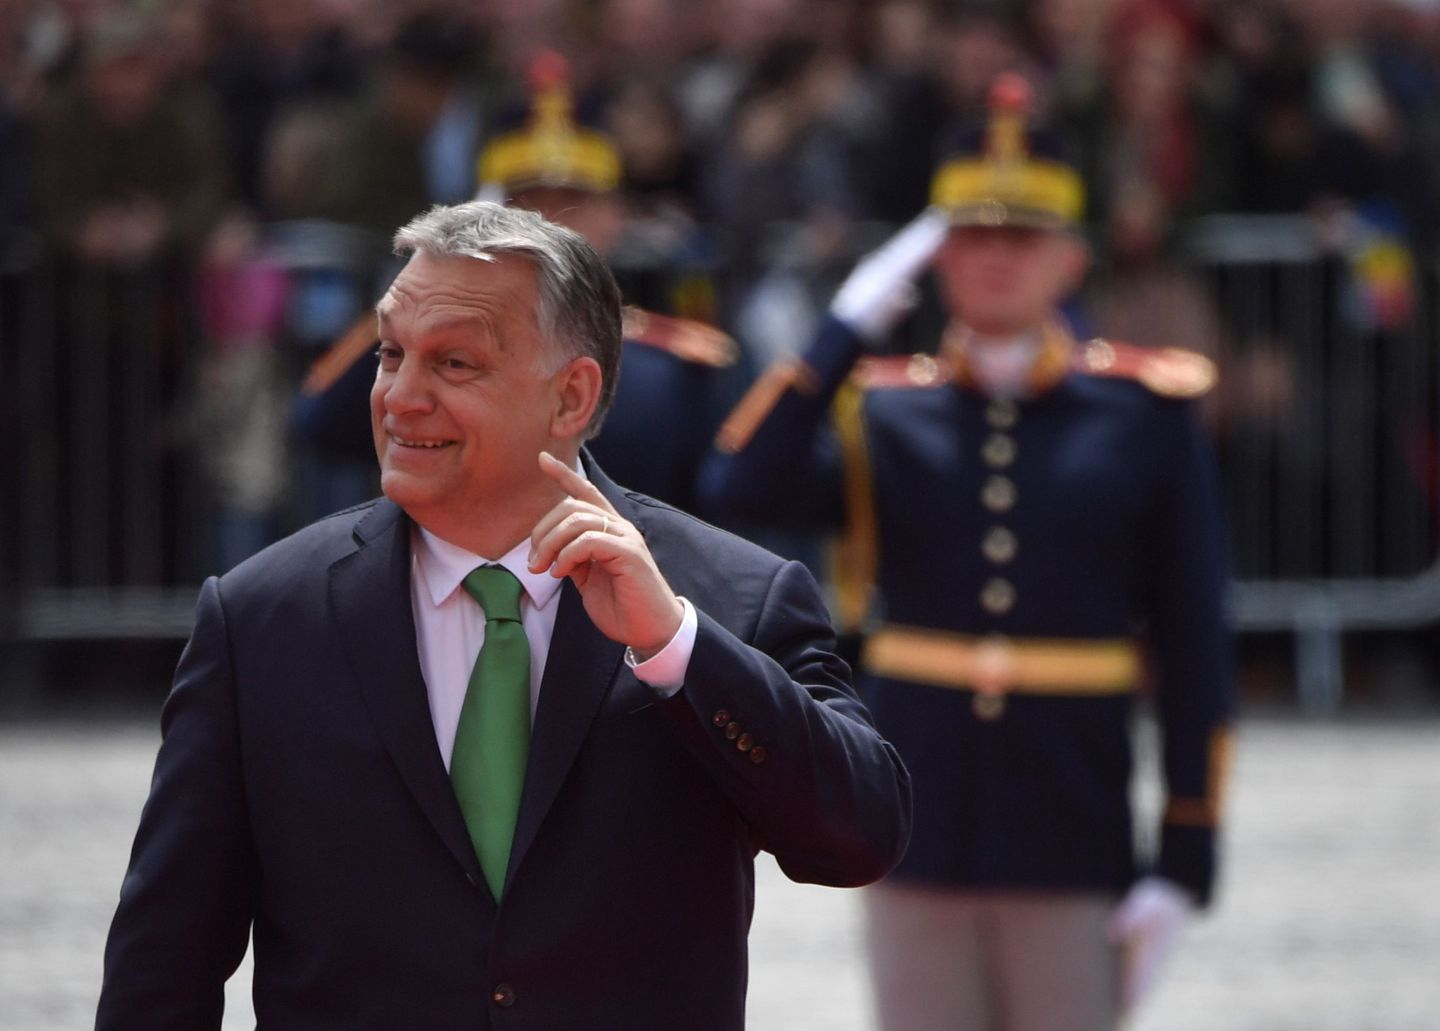 Why Trump's meeting Hungary's Orban is a 'bit controversial'